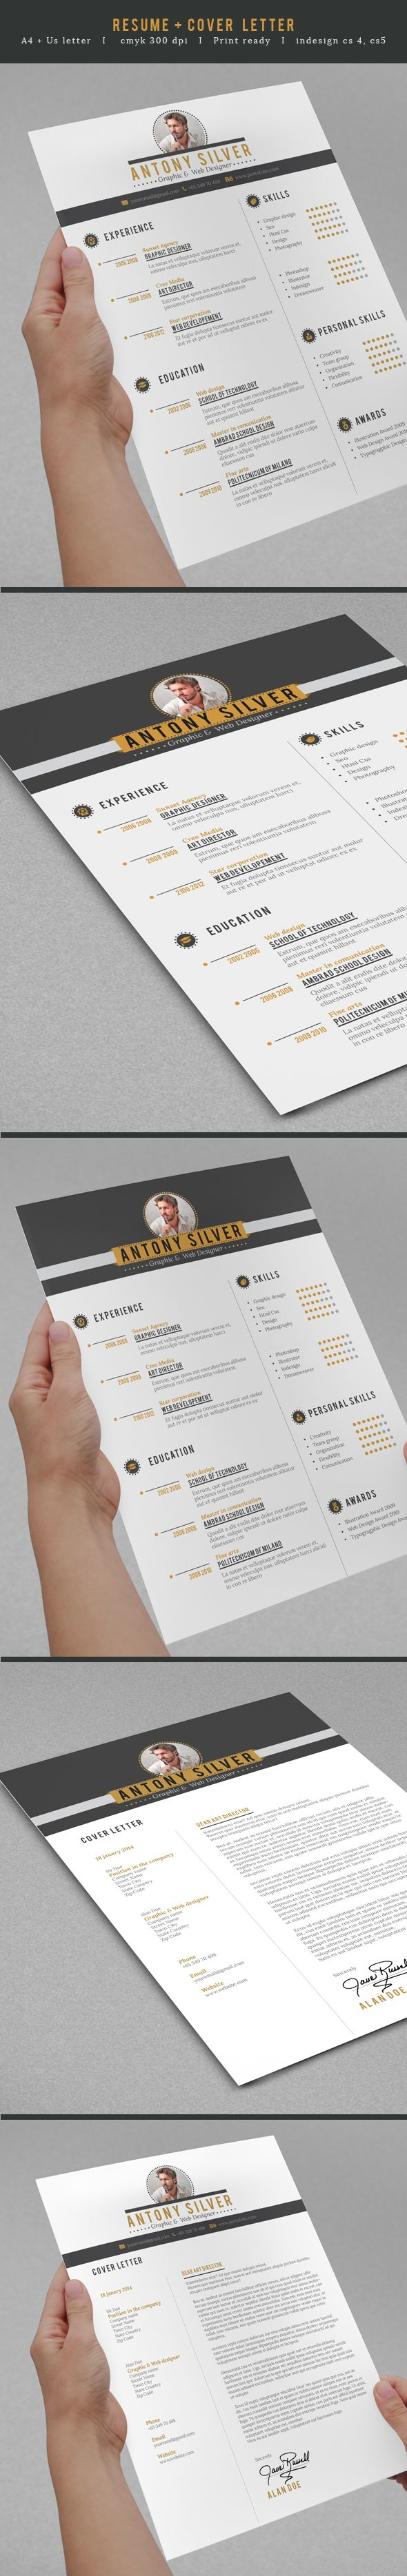 109 best Creative Resumes images on Pinterest